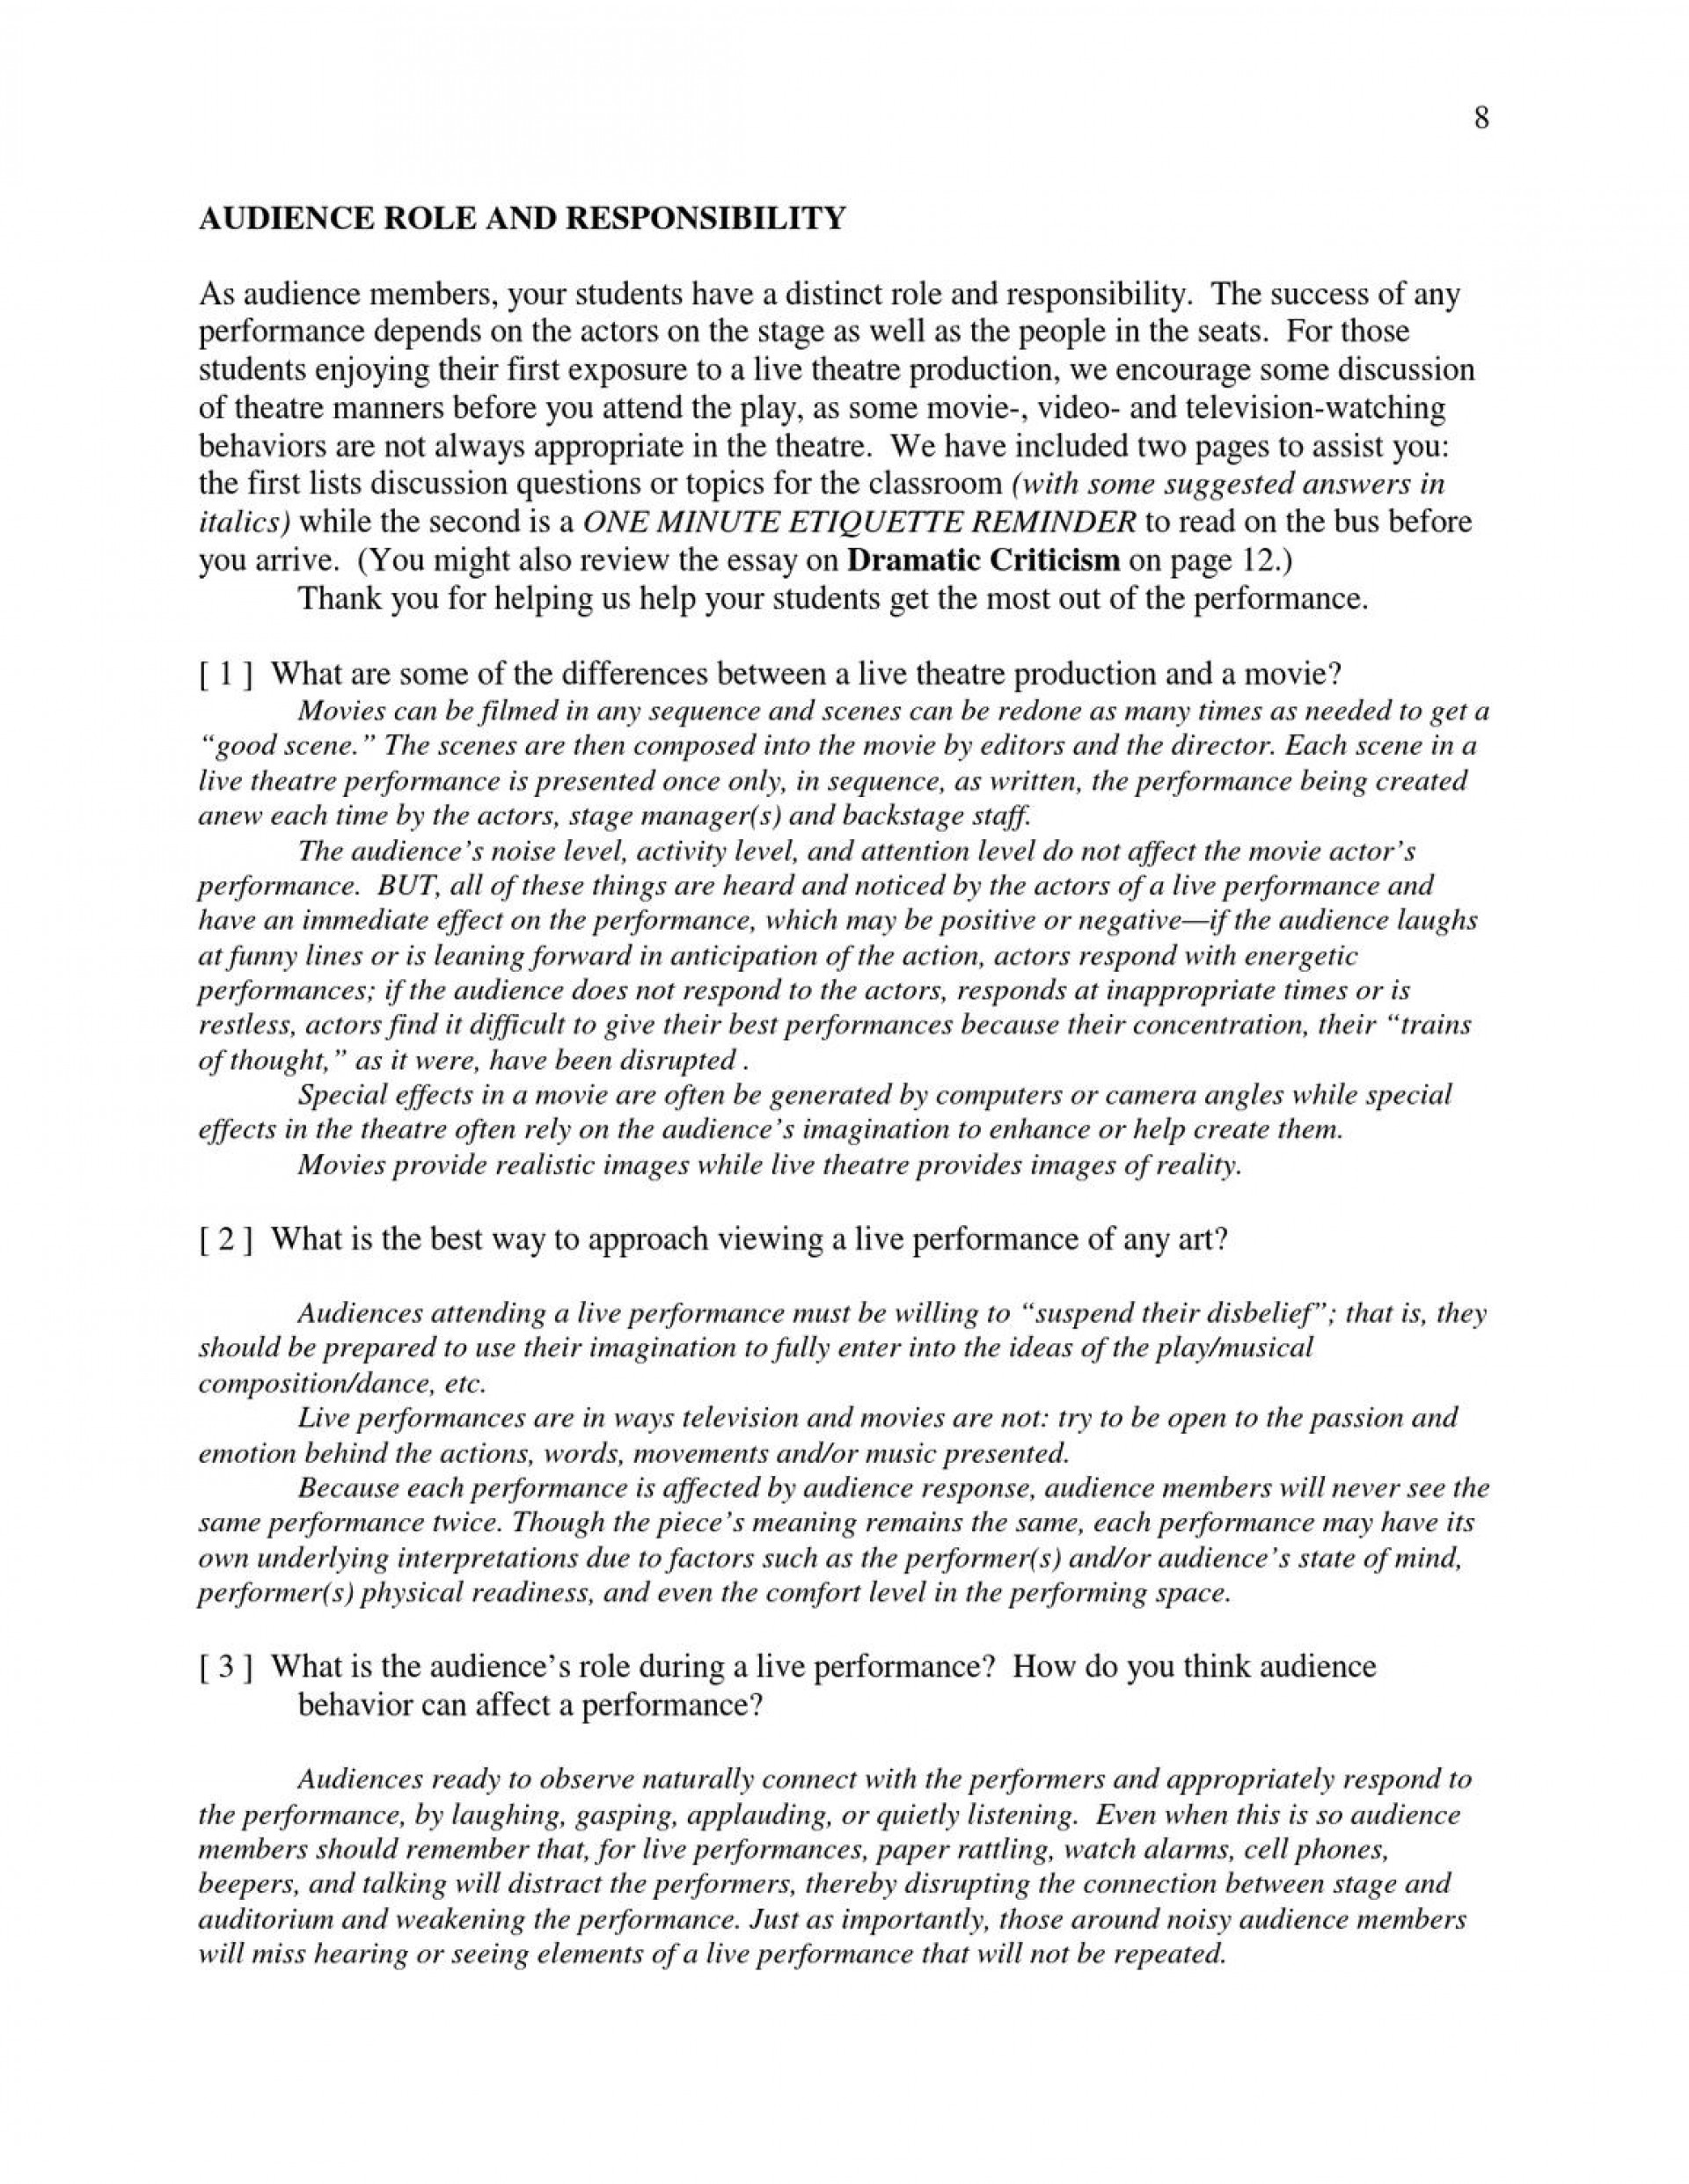 001 Essay On The Crucible Page 1 Phenomenal And Red Scare Reputation Questions For Act 1920